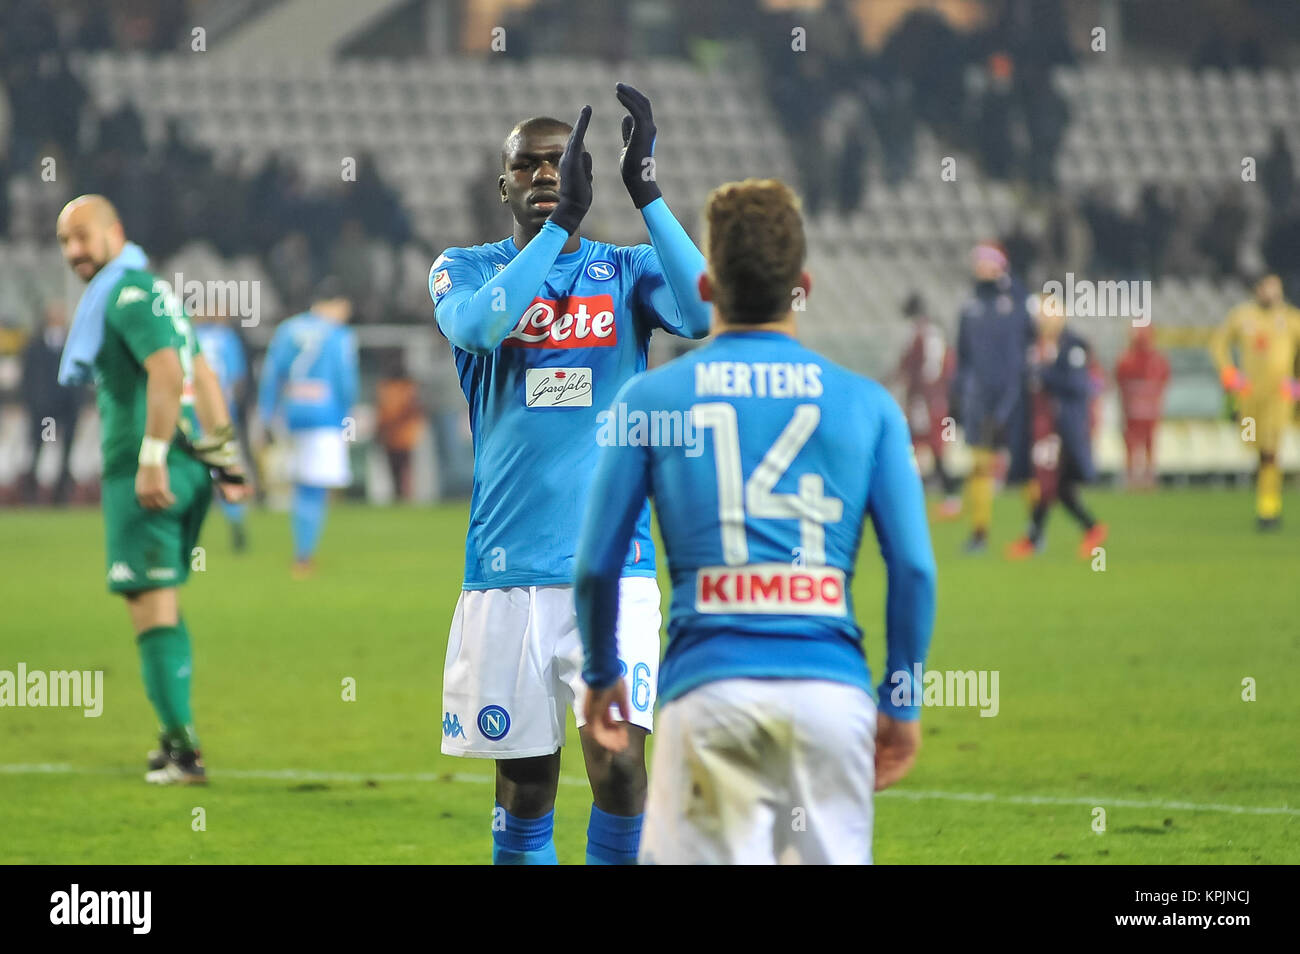 Kalidou Koulibaly High Resolution Stock Photography And Images Alamy